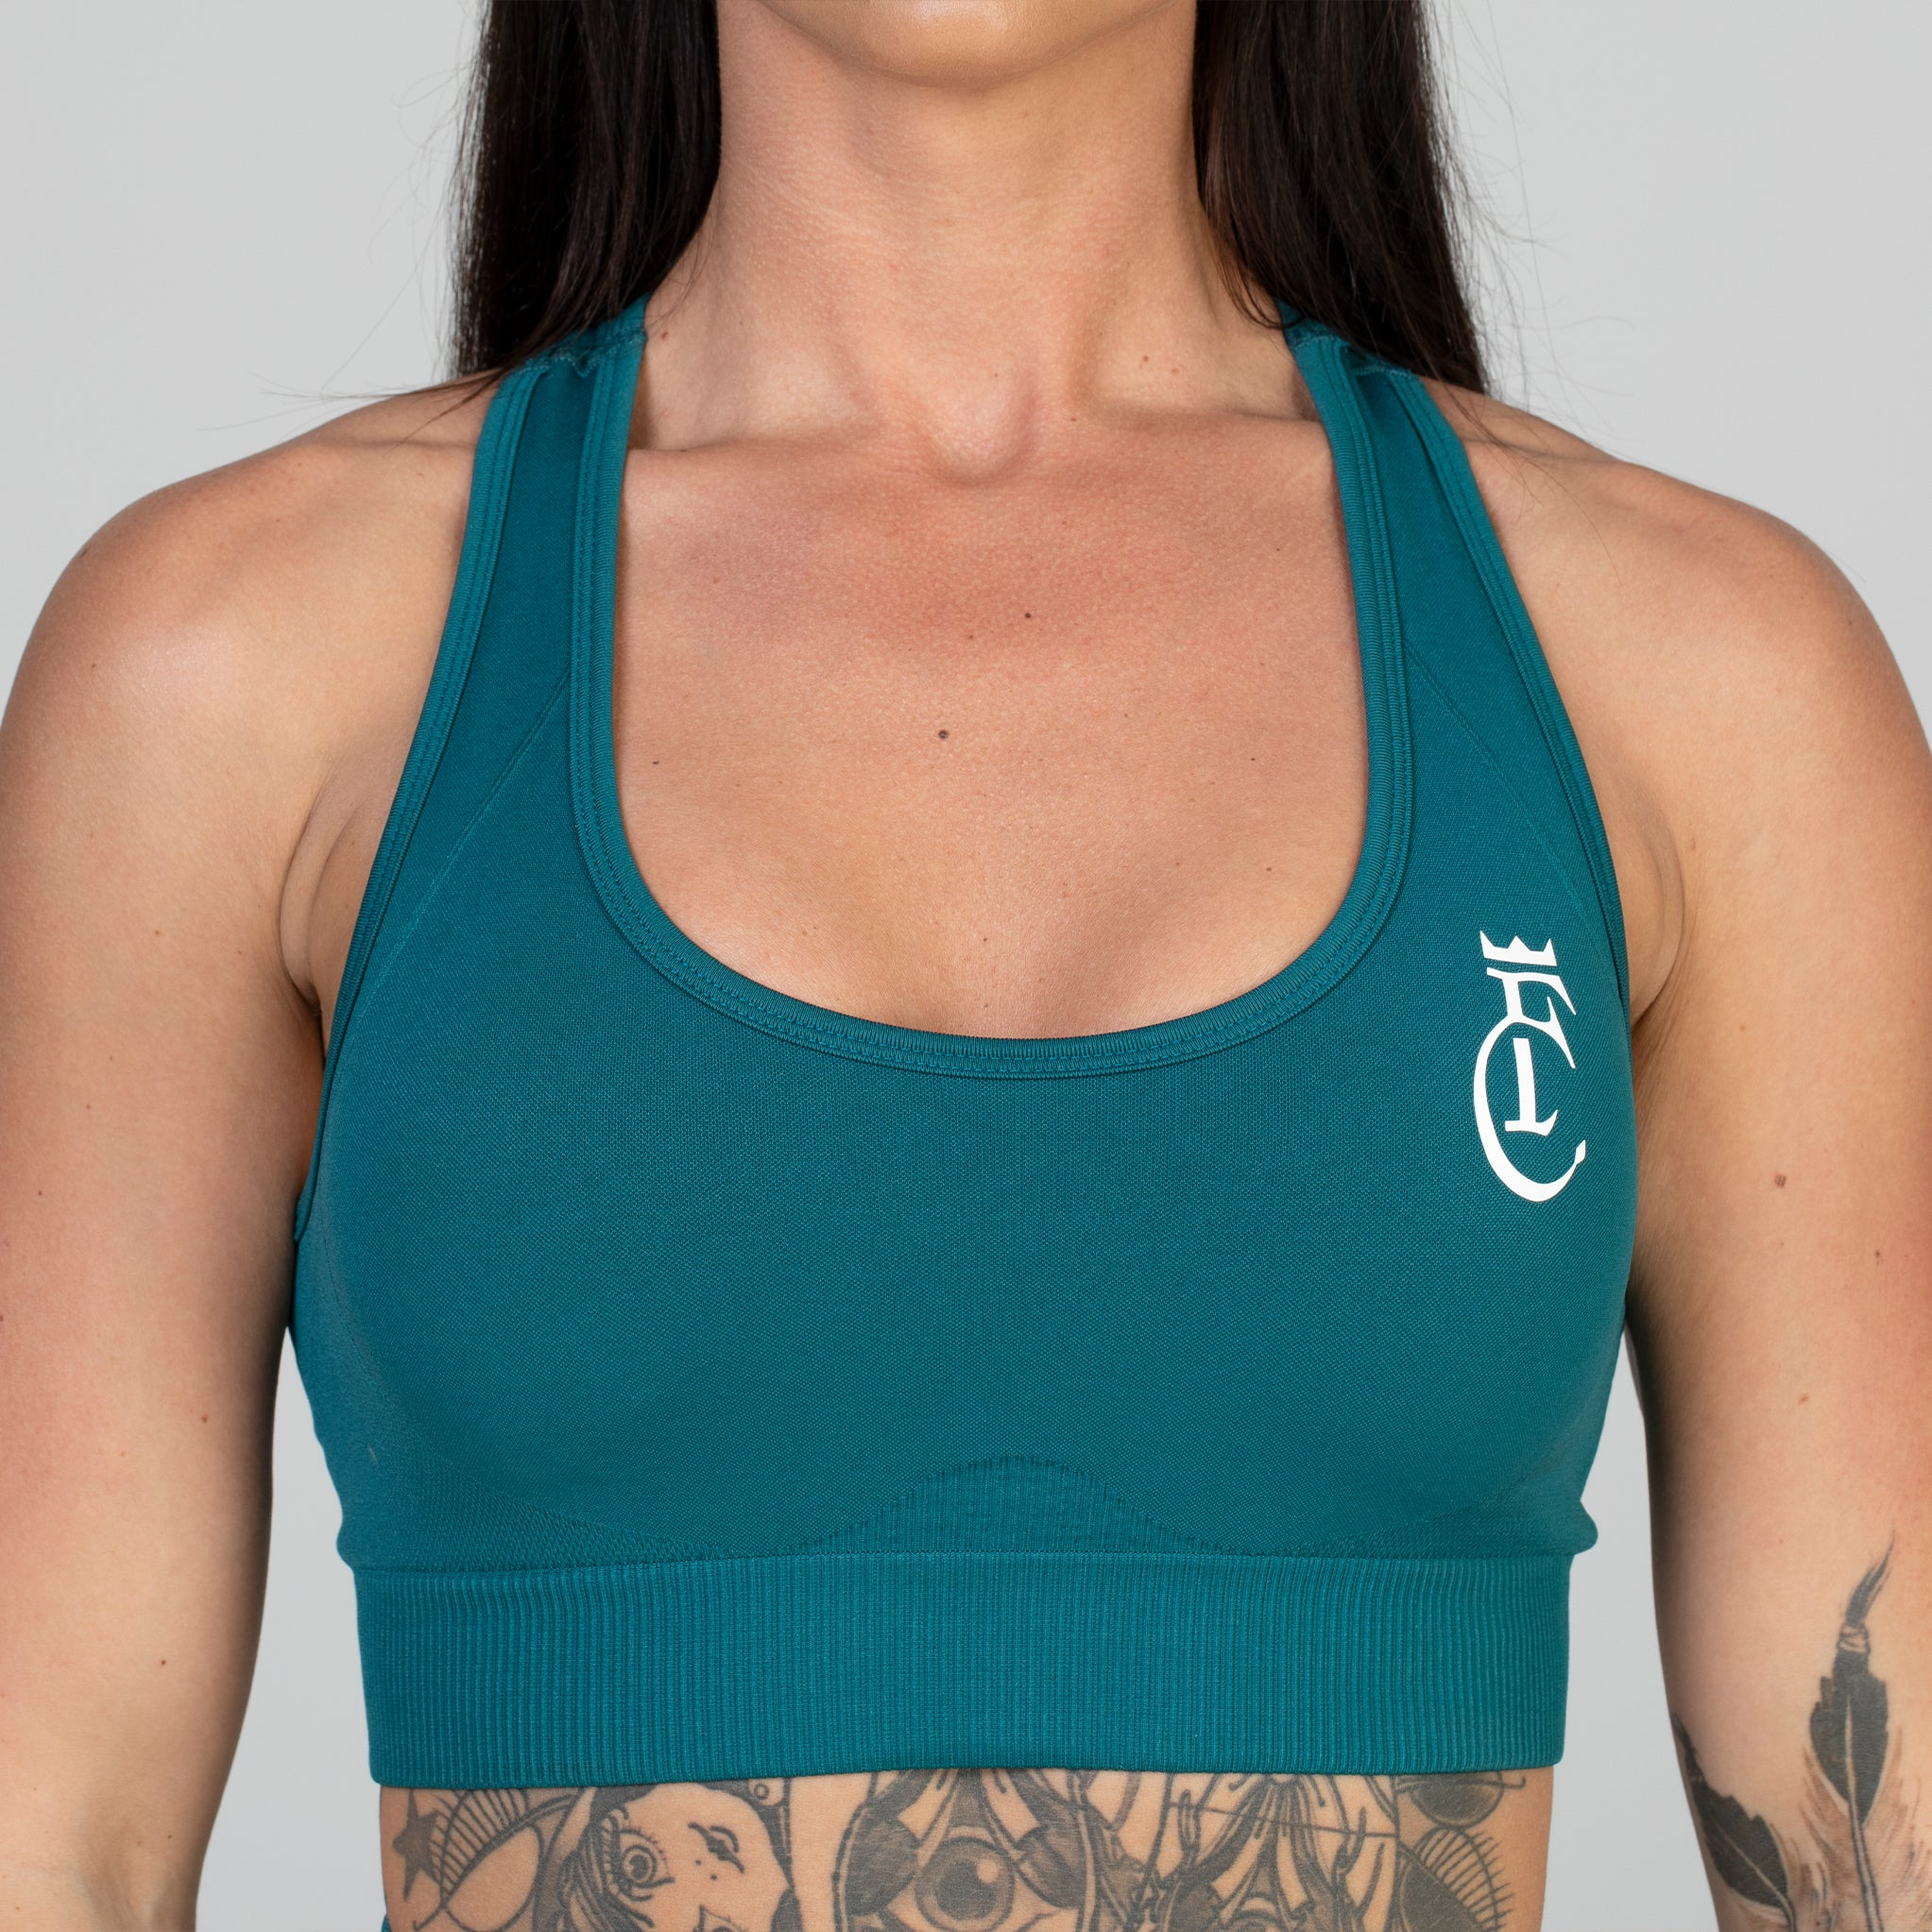 Emerald Green Seamless Sports Bra